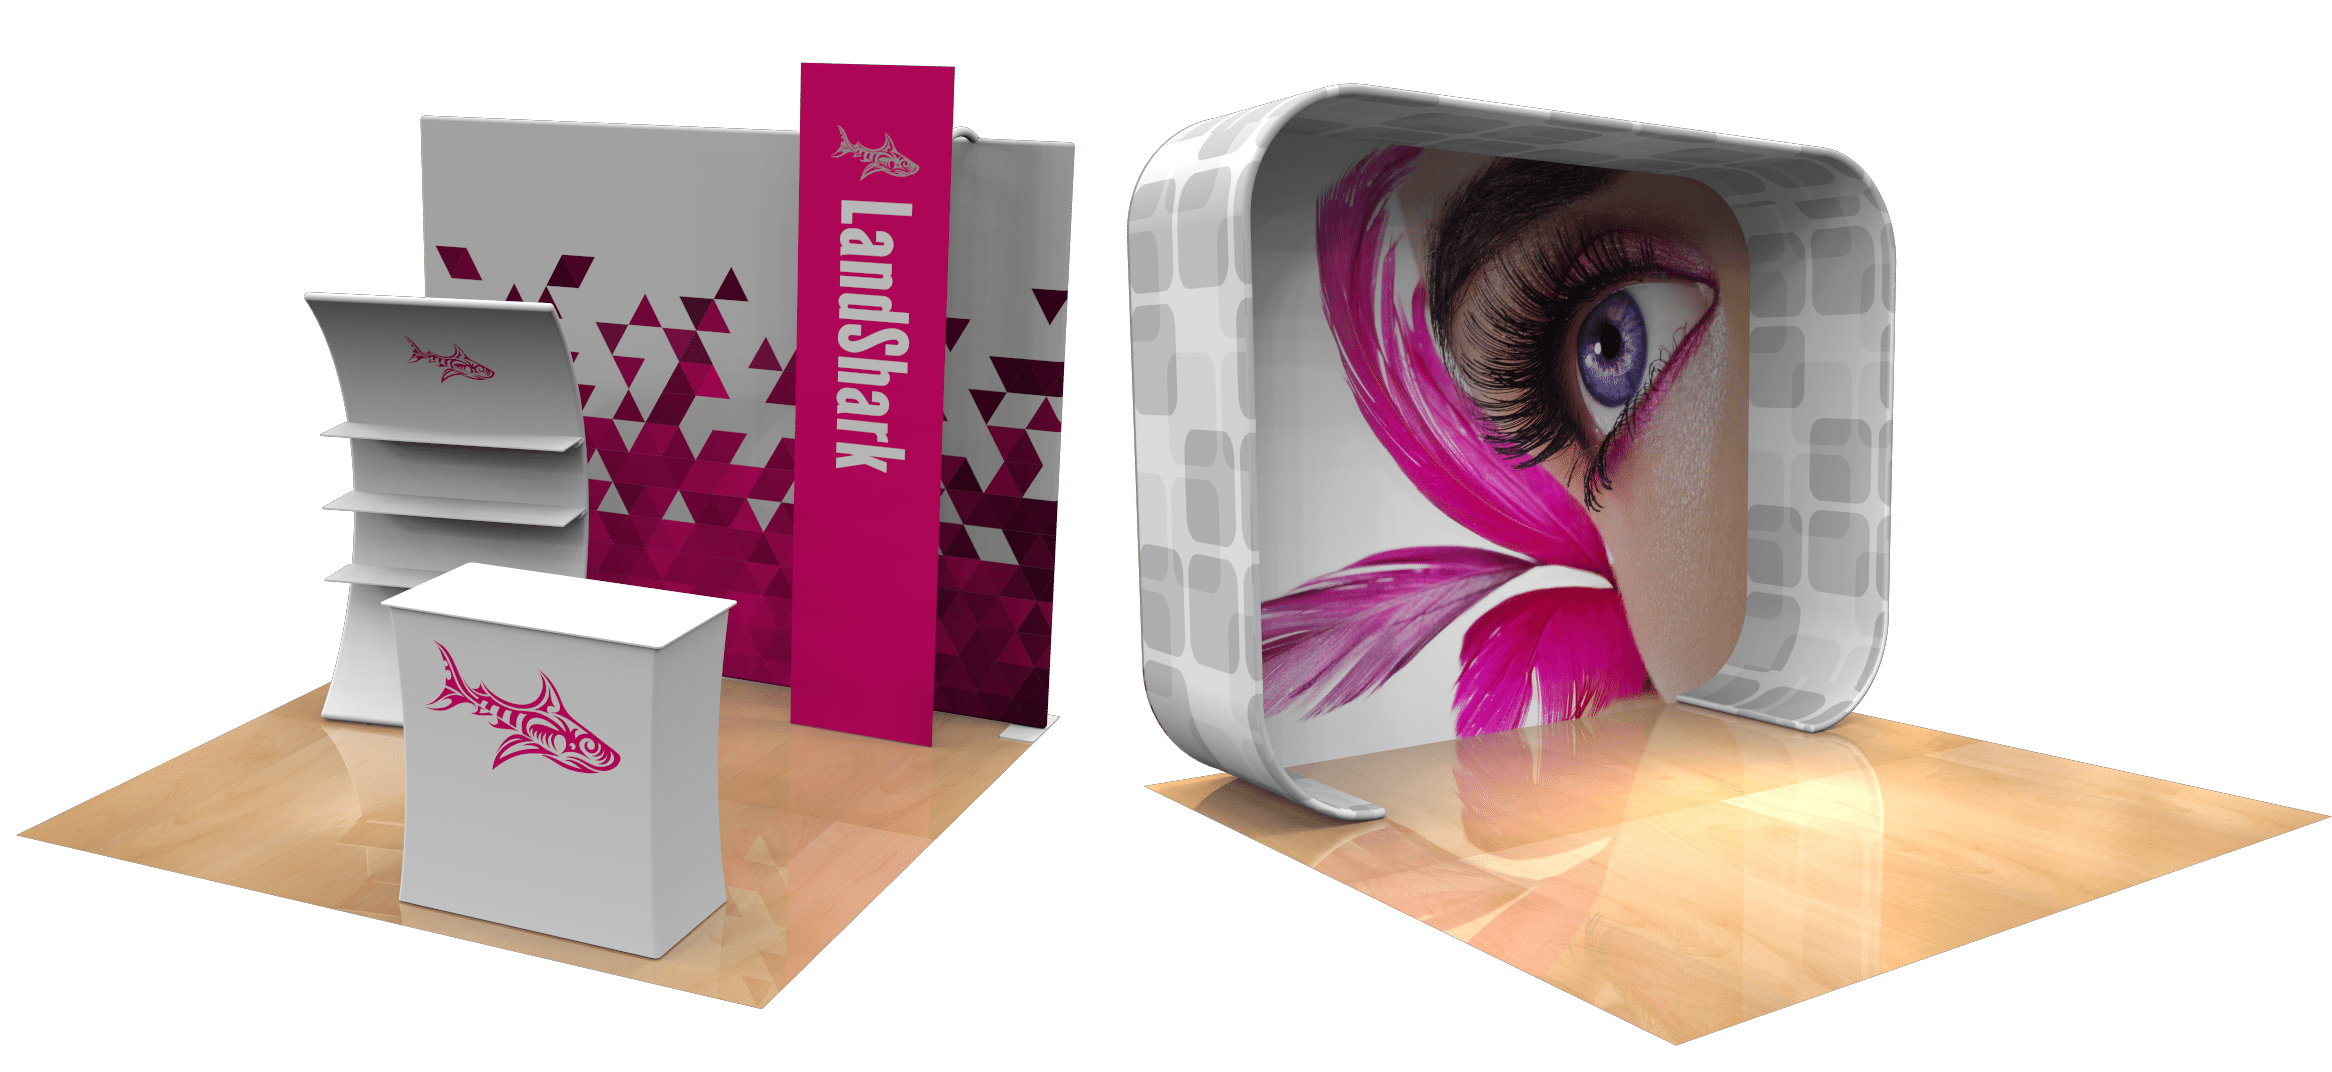 10×10 Trade Show Booth Concepts